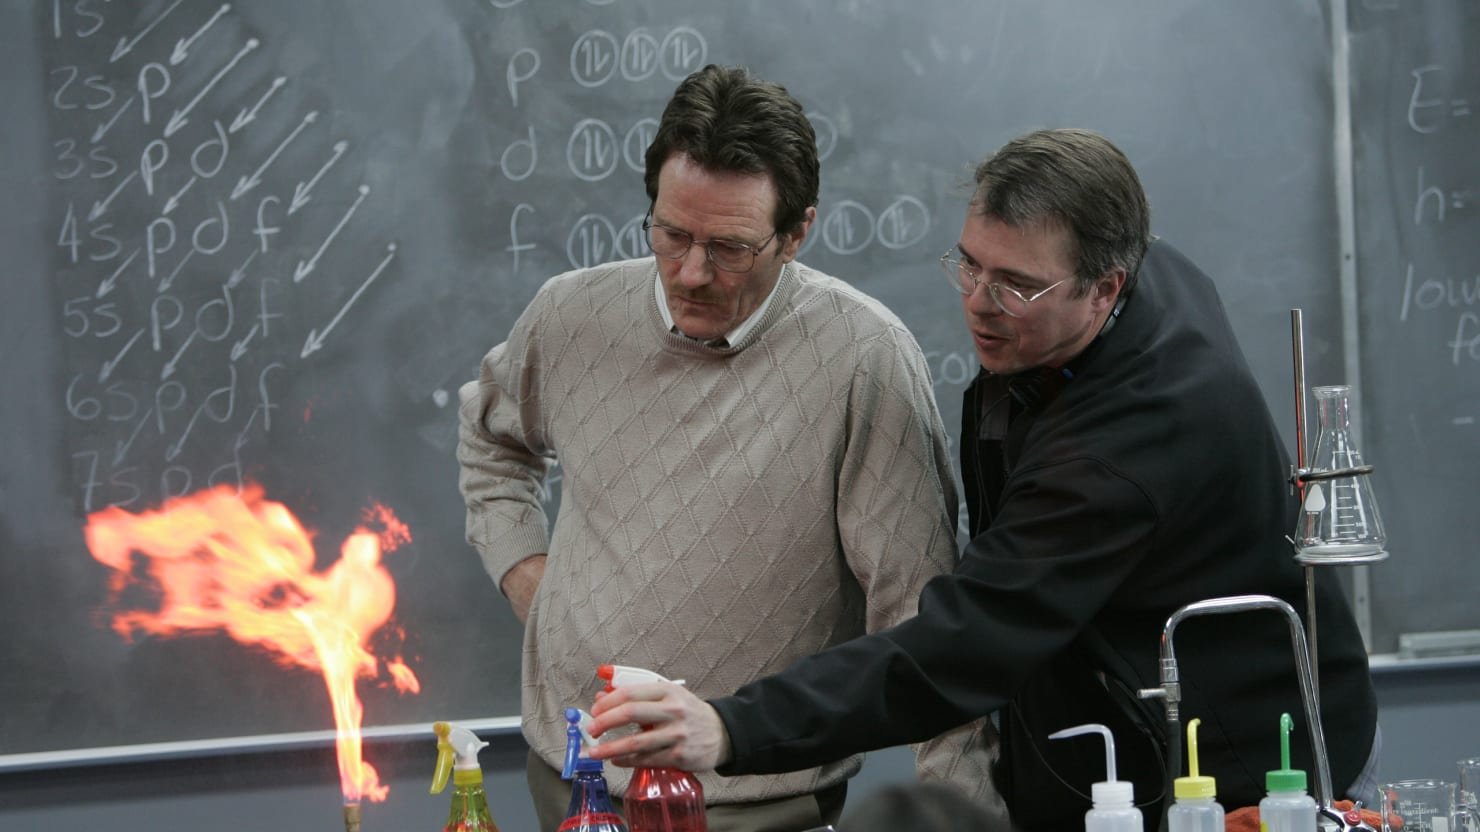 Breaking Bad Finale: Lost Interviews With Bryan Cranston & Vince Gilligan